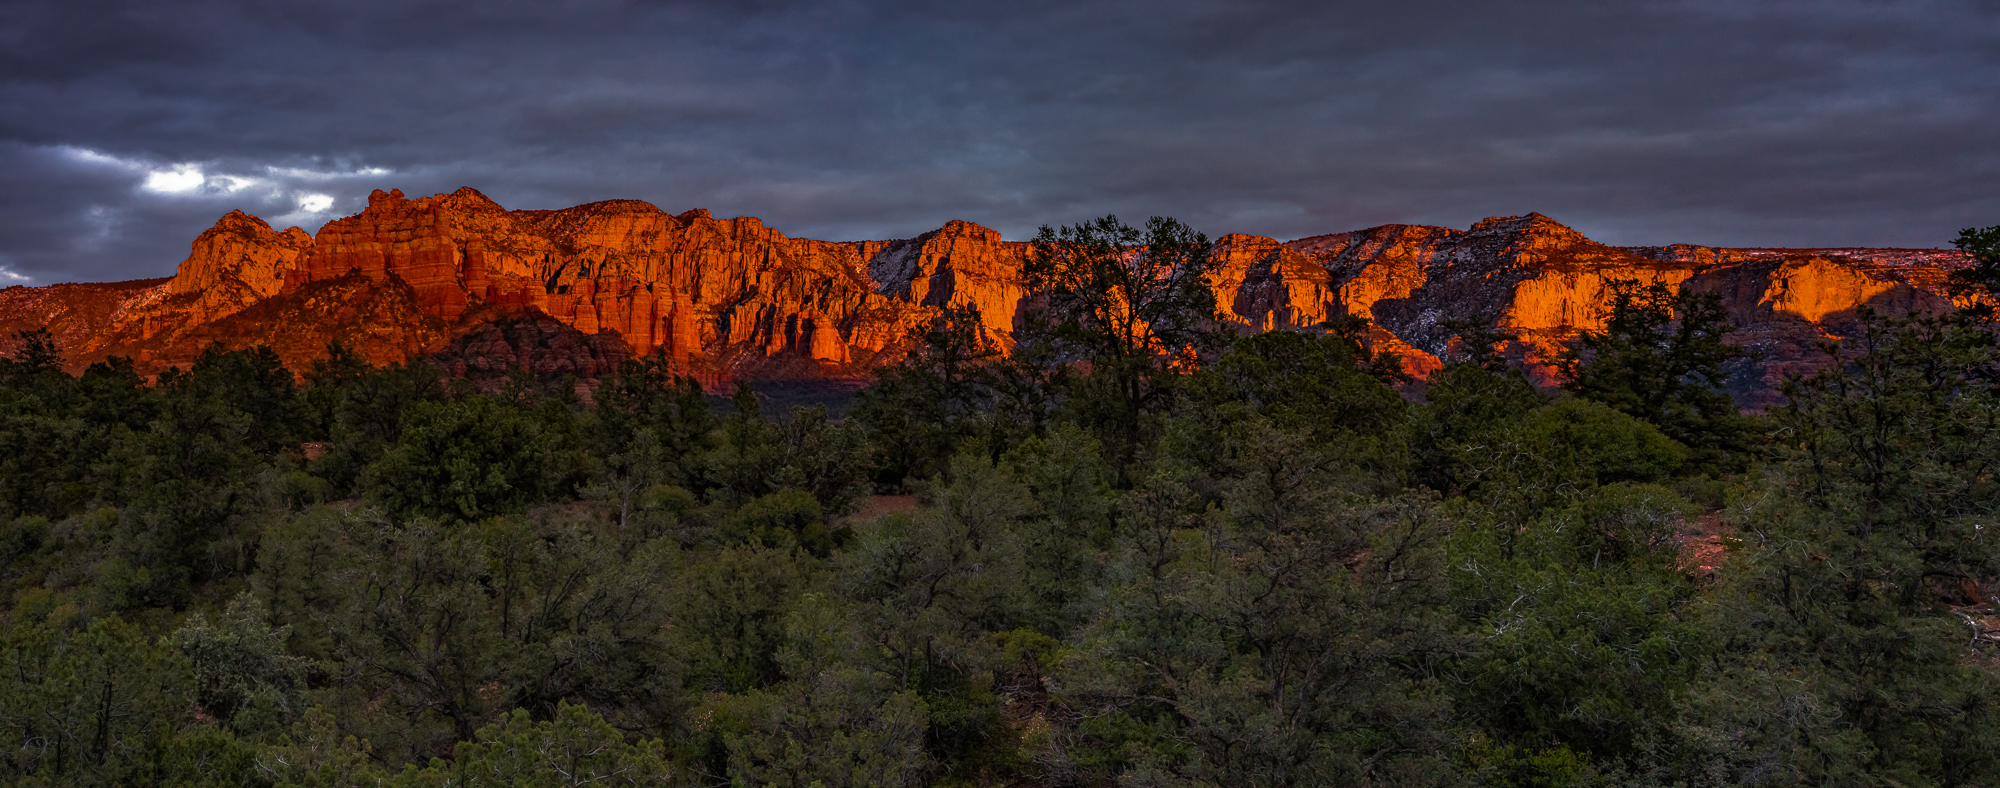 The Mogollon Rim Just After Sunset